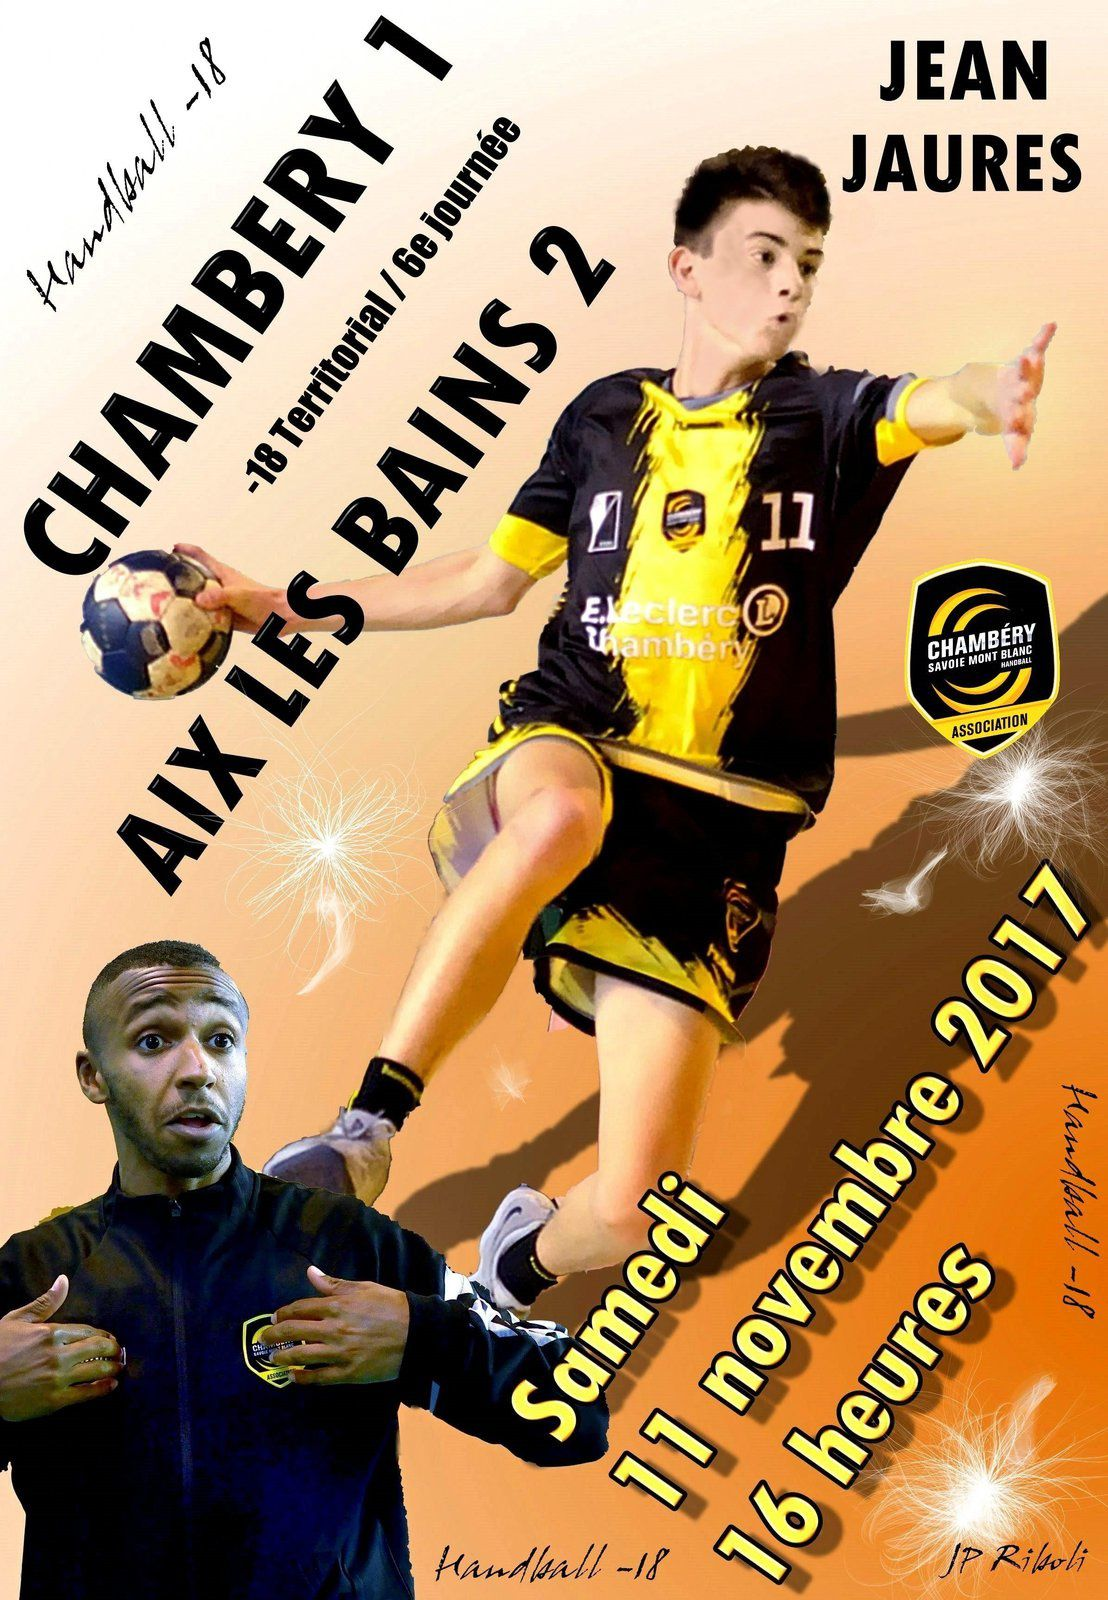 CHAMBERY les matches du week-end 11 et 12 novembre 2017